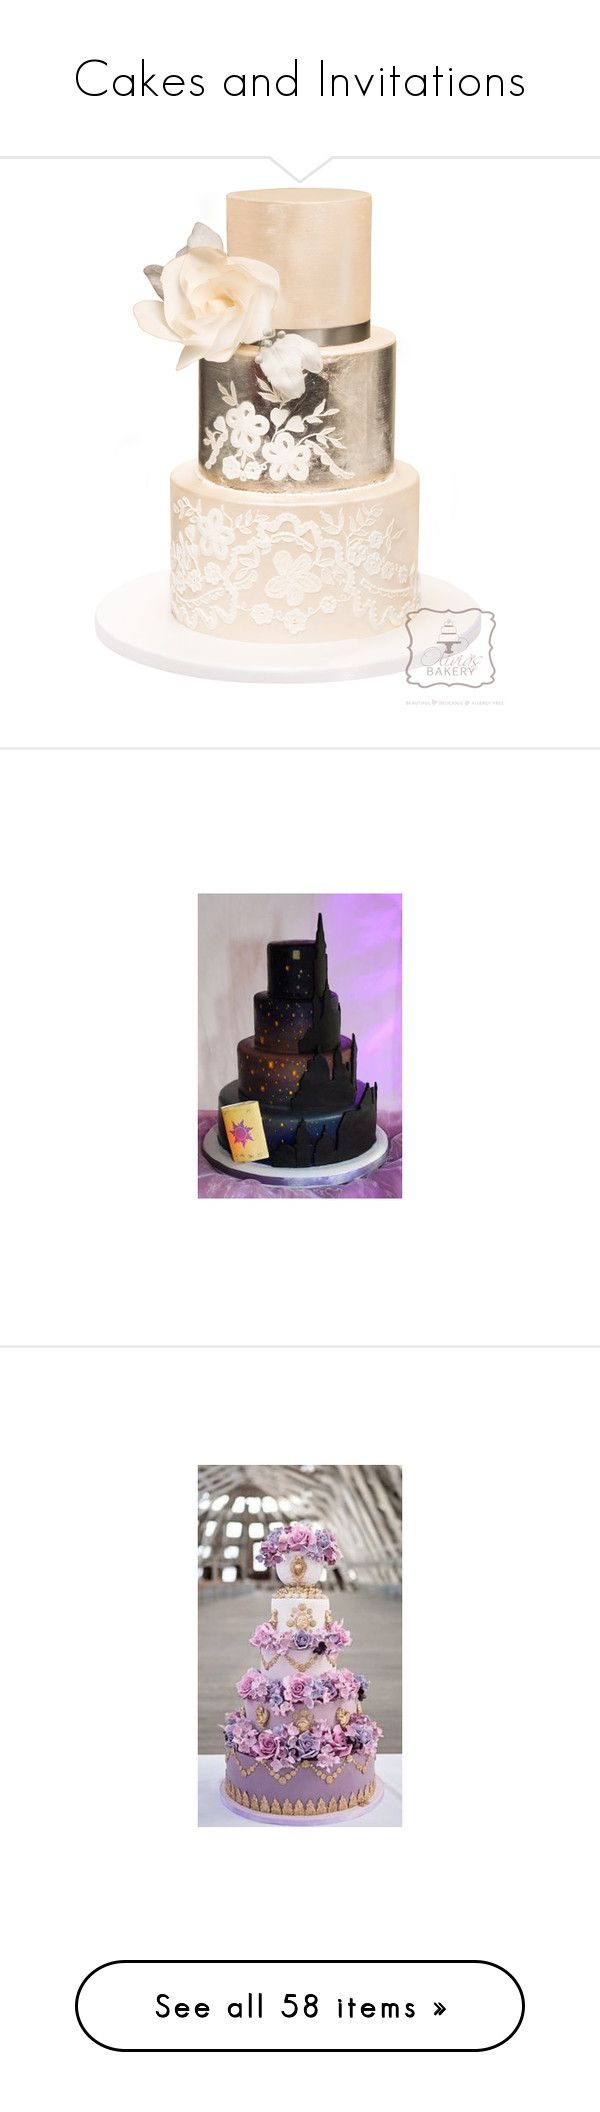 """""""Cakes and Invitations"""" by silverbellatrix ❤ liked on Polyvore featuring food, wedding cakes, cake, weddings, wedding, cakes, wedding cake, backgrounds, music and food and drink"""